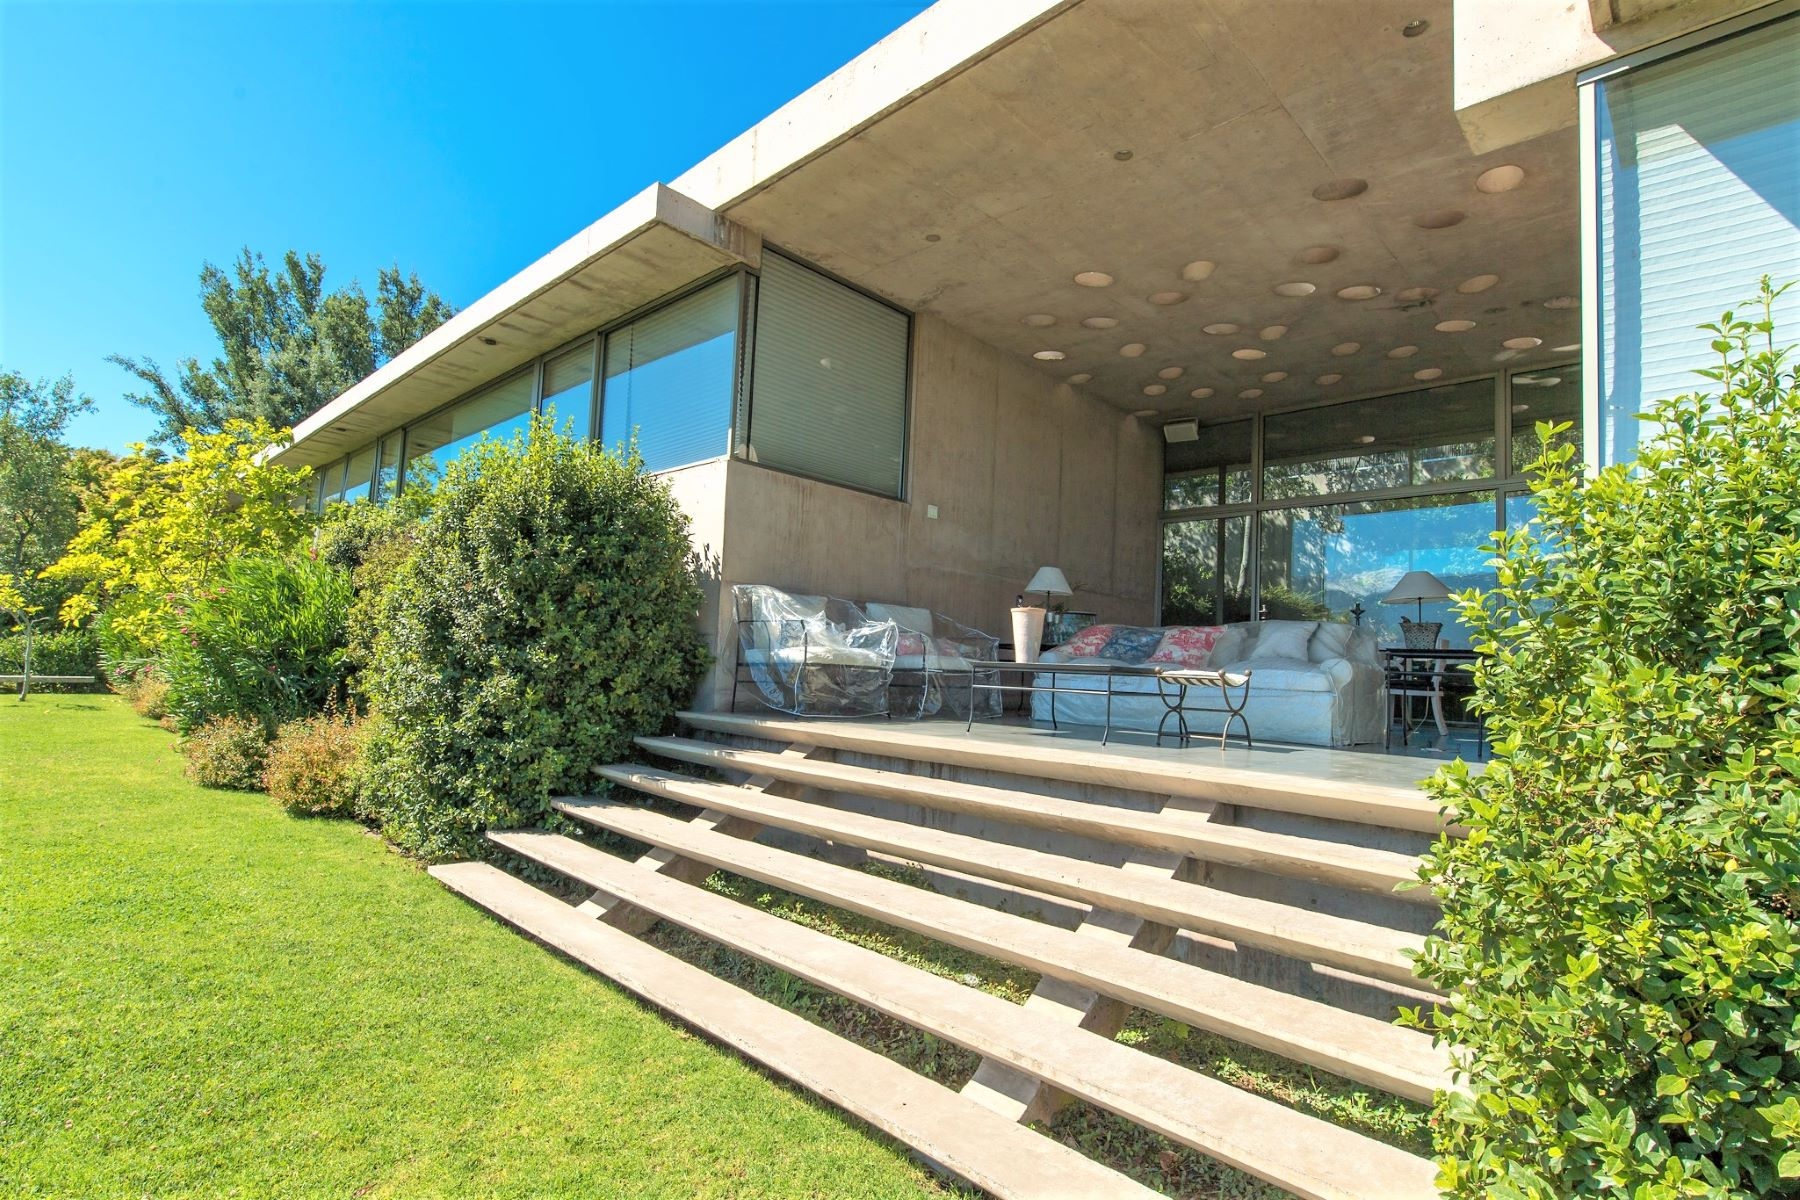 단독 가정 주택 용 매매 에 Exceptional Home with Unique and Modern Architecture - La Dehesa Lo Barnechea, Santiago, Region Metropolitana De Santiago 칠레